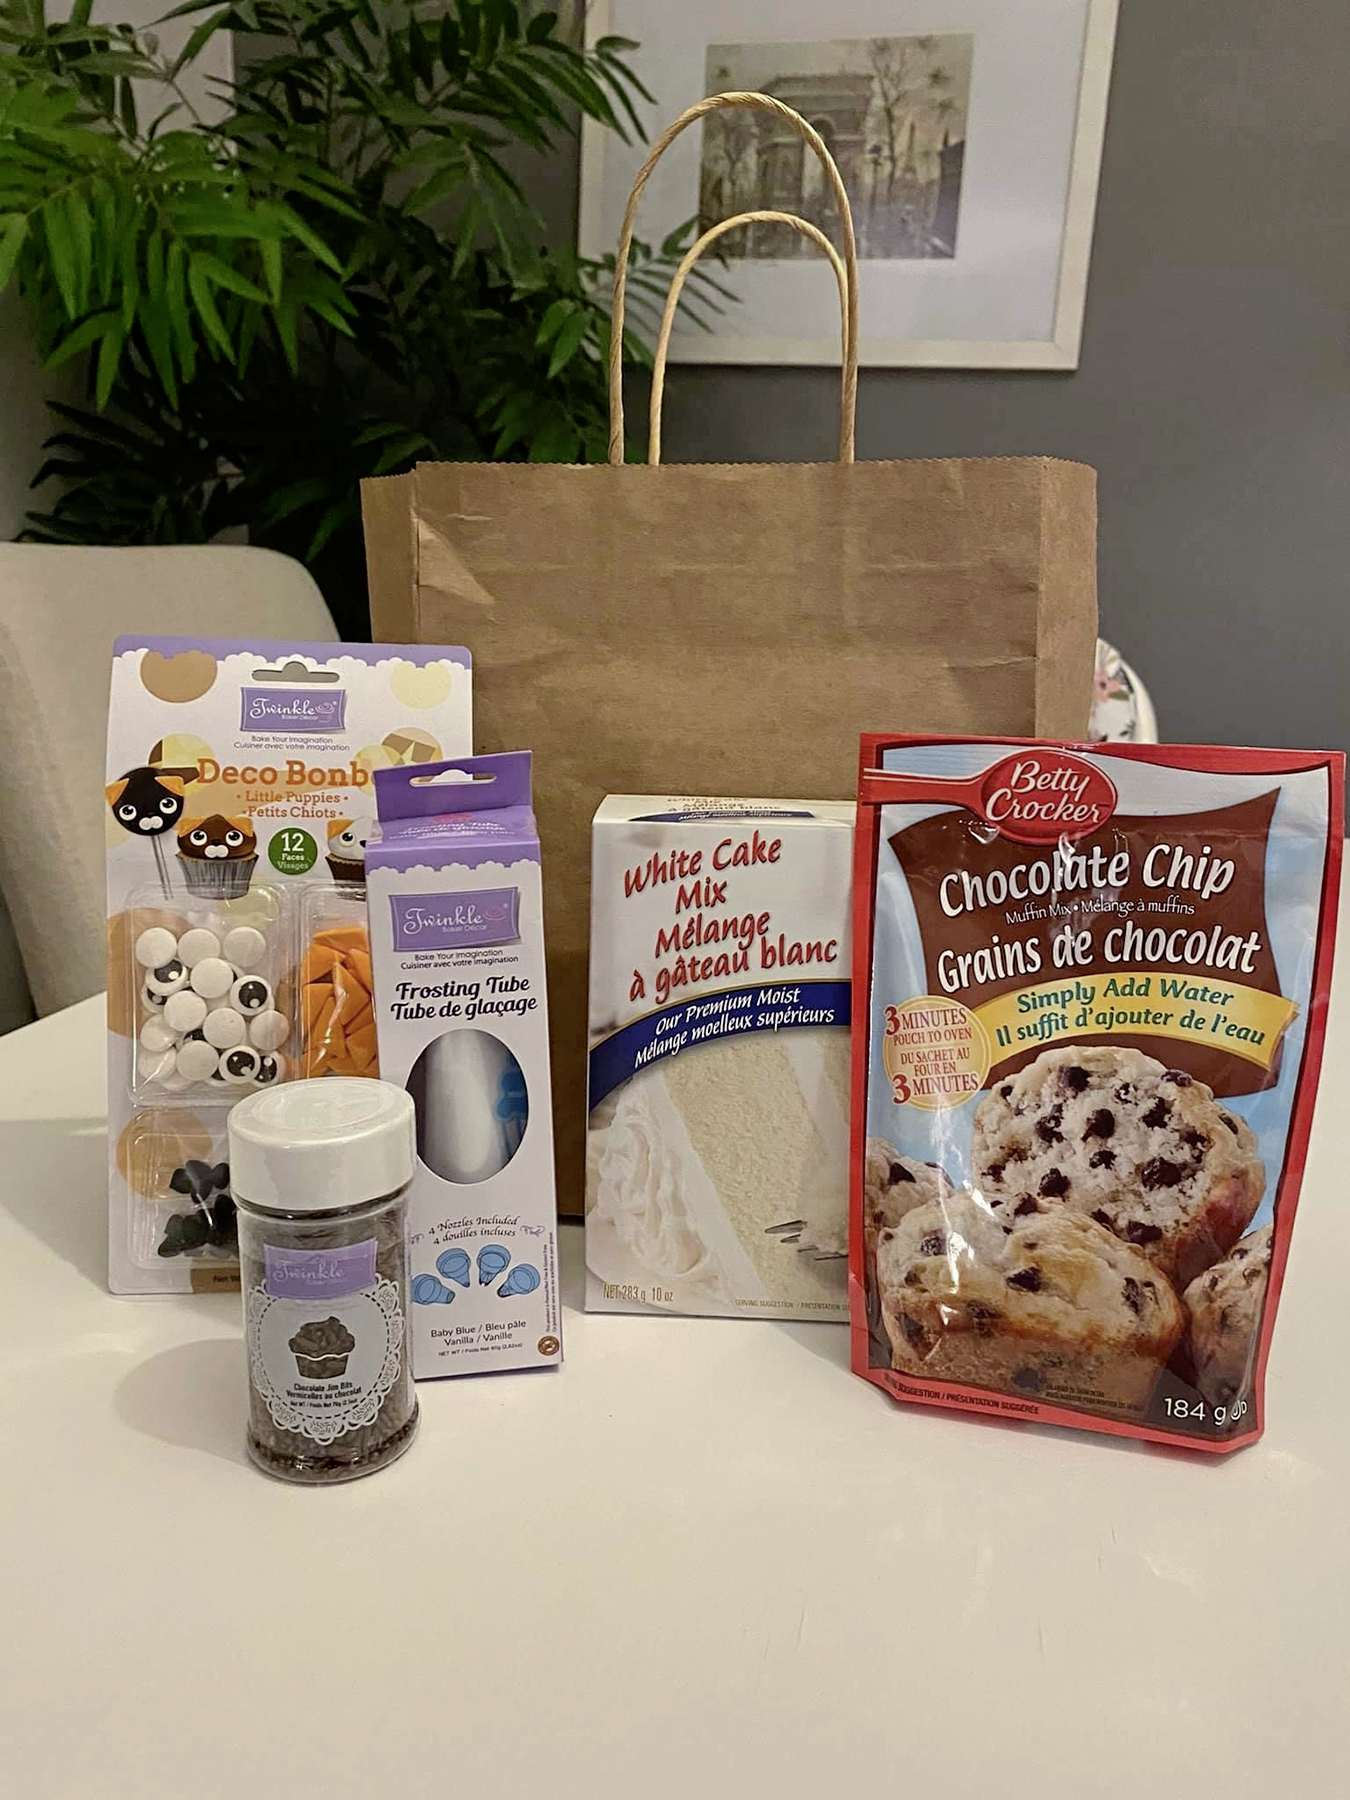 Home baking kit put together by one of the members of the Buy Nothing North River Heights group on Facebook.